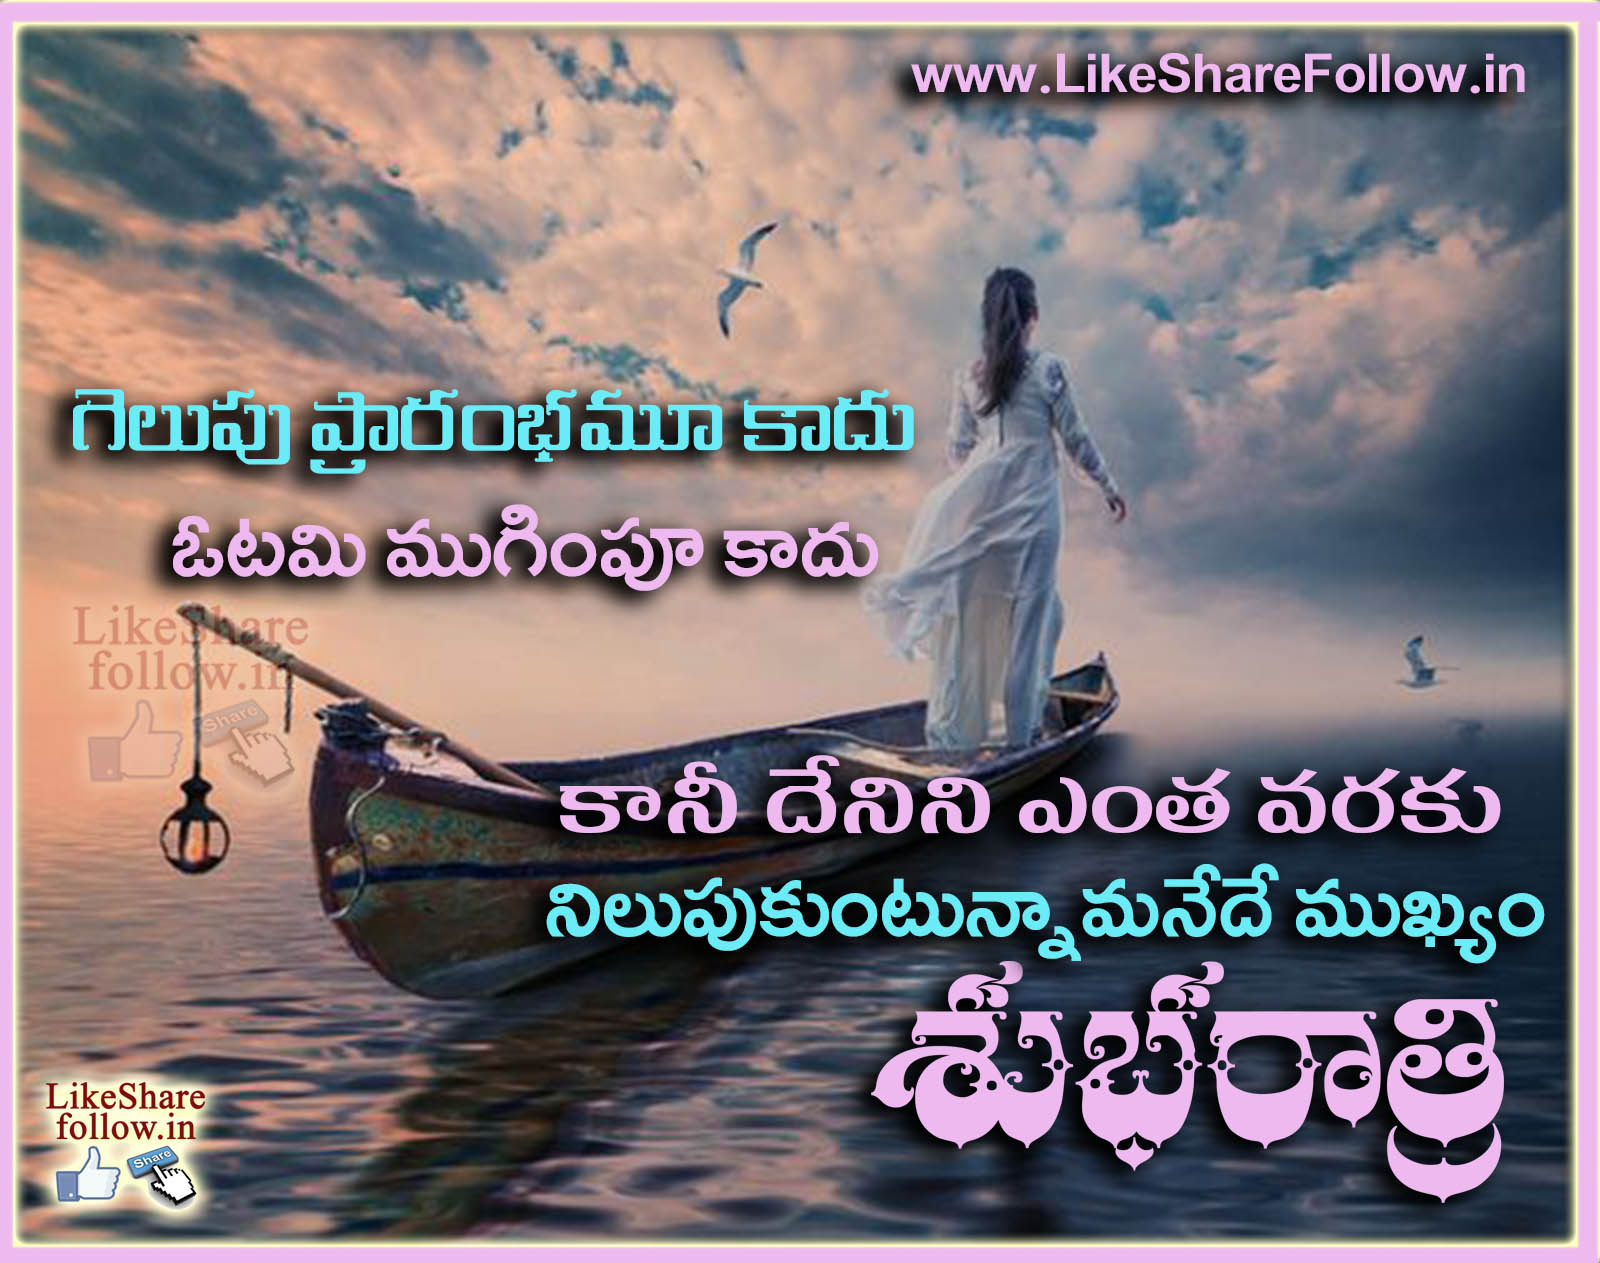 Good Night Quotes With Inspirational Quotes Like Share Follow